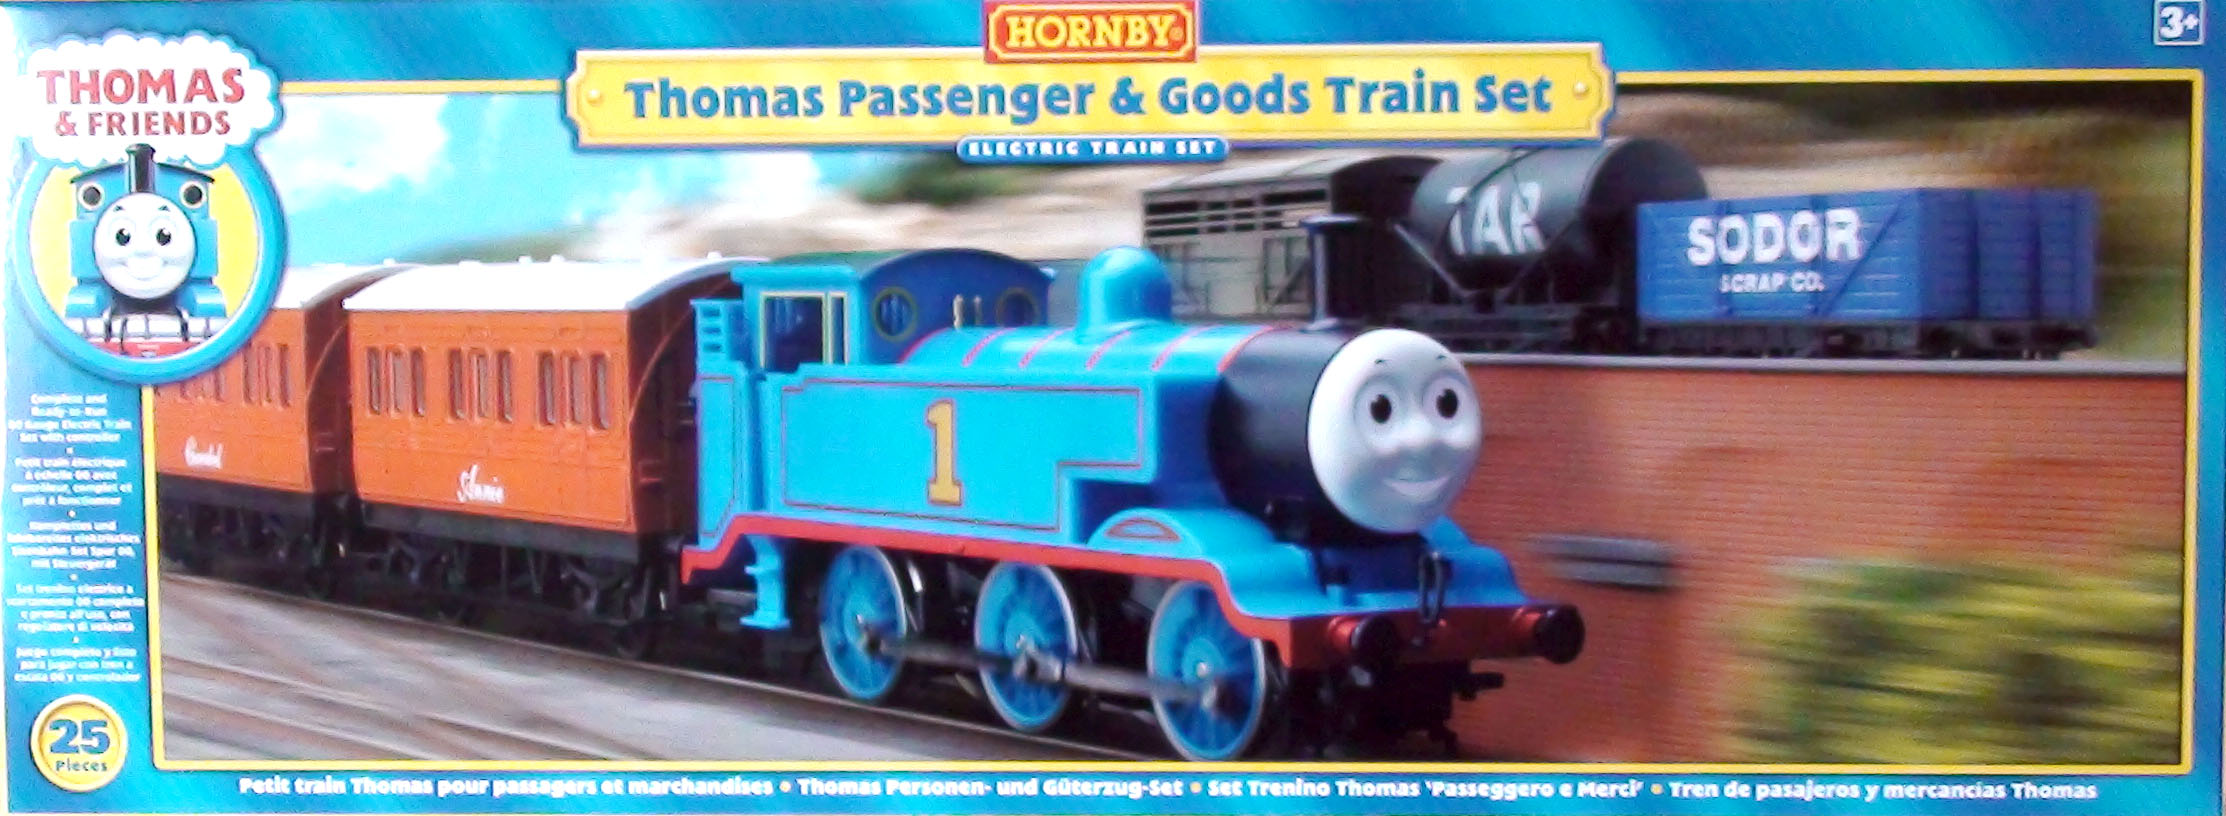 Image result for hornby thomas passenger and goods train set